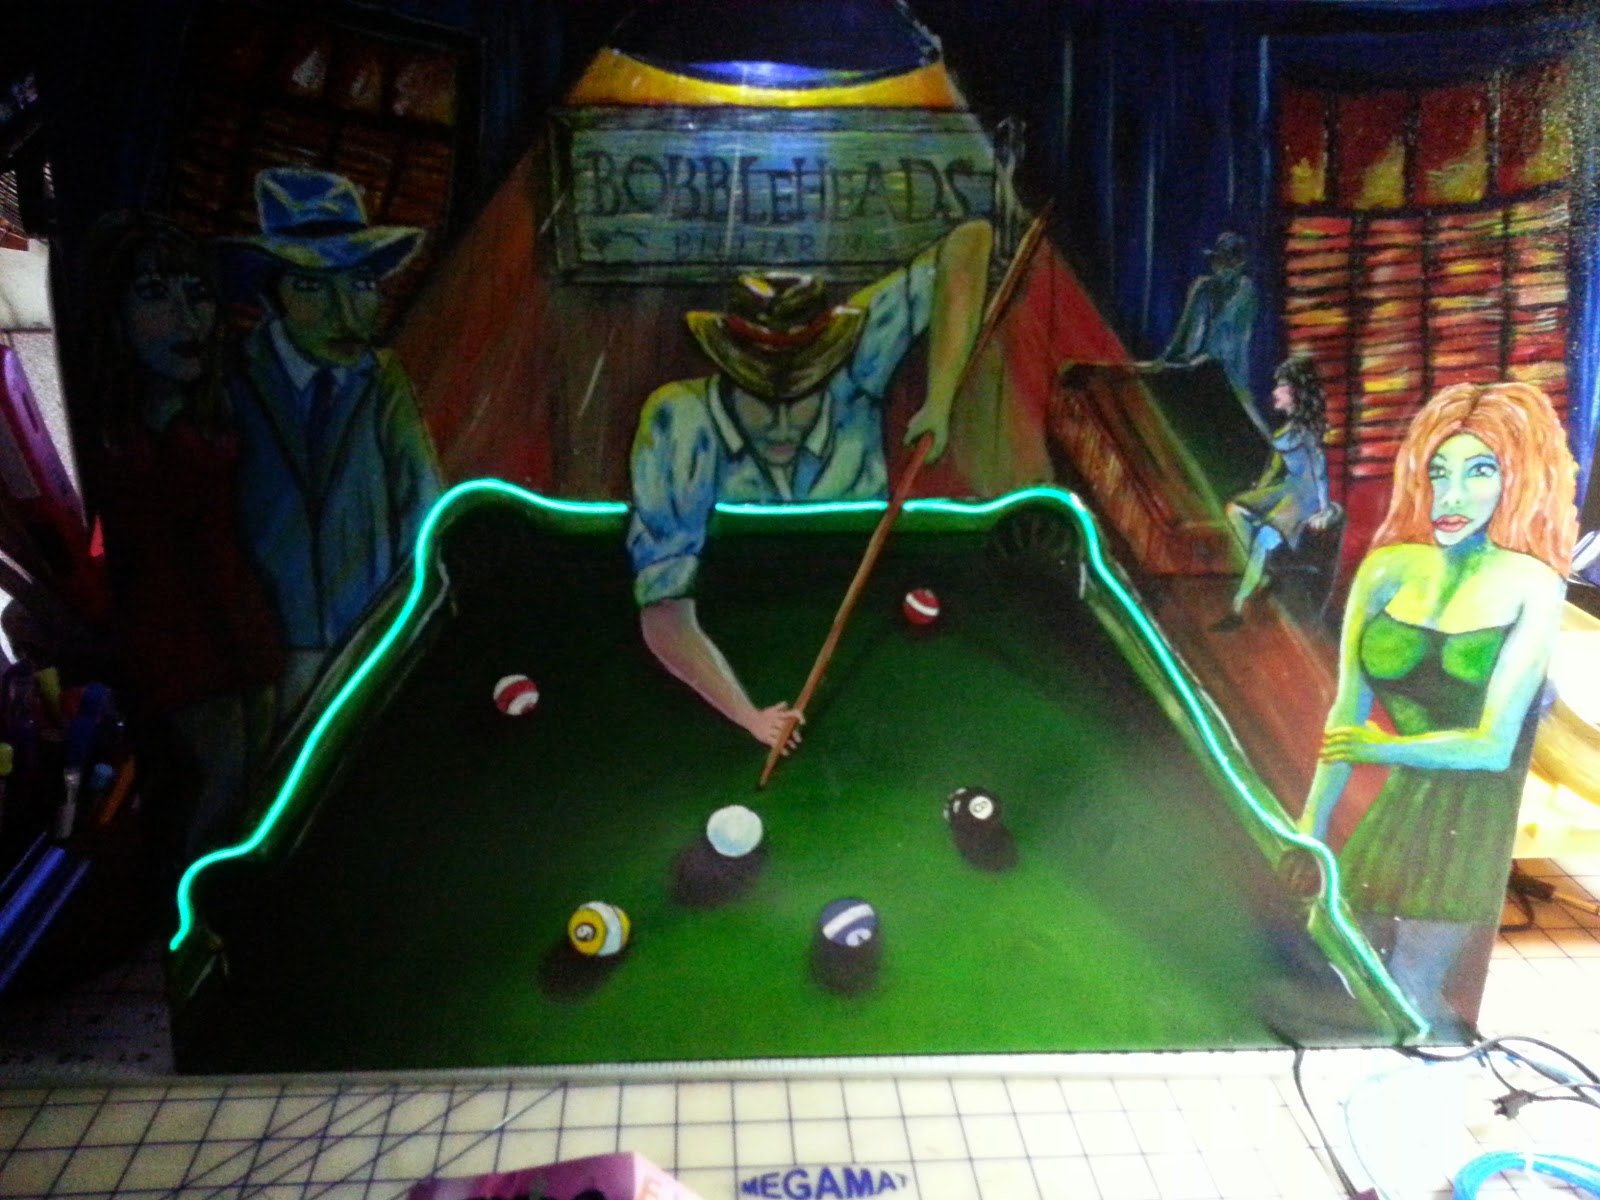 Oh no that did not happen pool hall billiards painting with el i call it bobbleheads billiards cuz for some reason the heads on the people kept gettin bigger and bigger so i just went with it here are a few pics greentooth Gallery